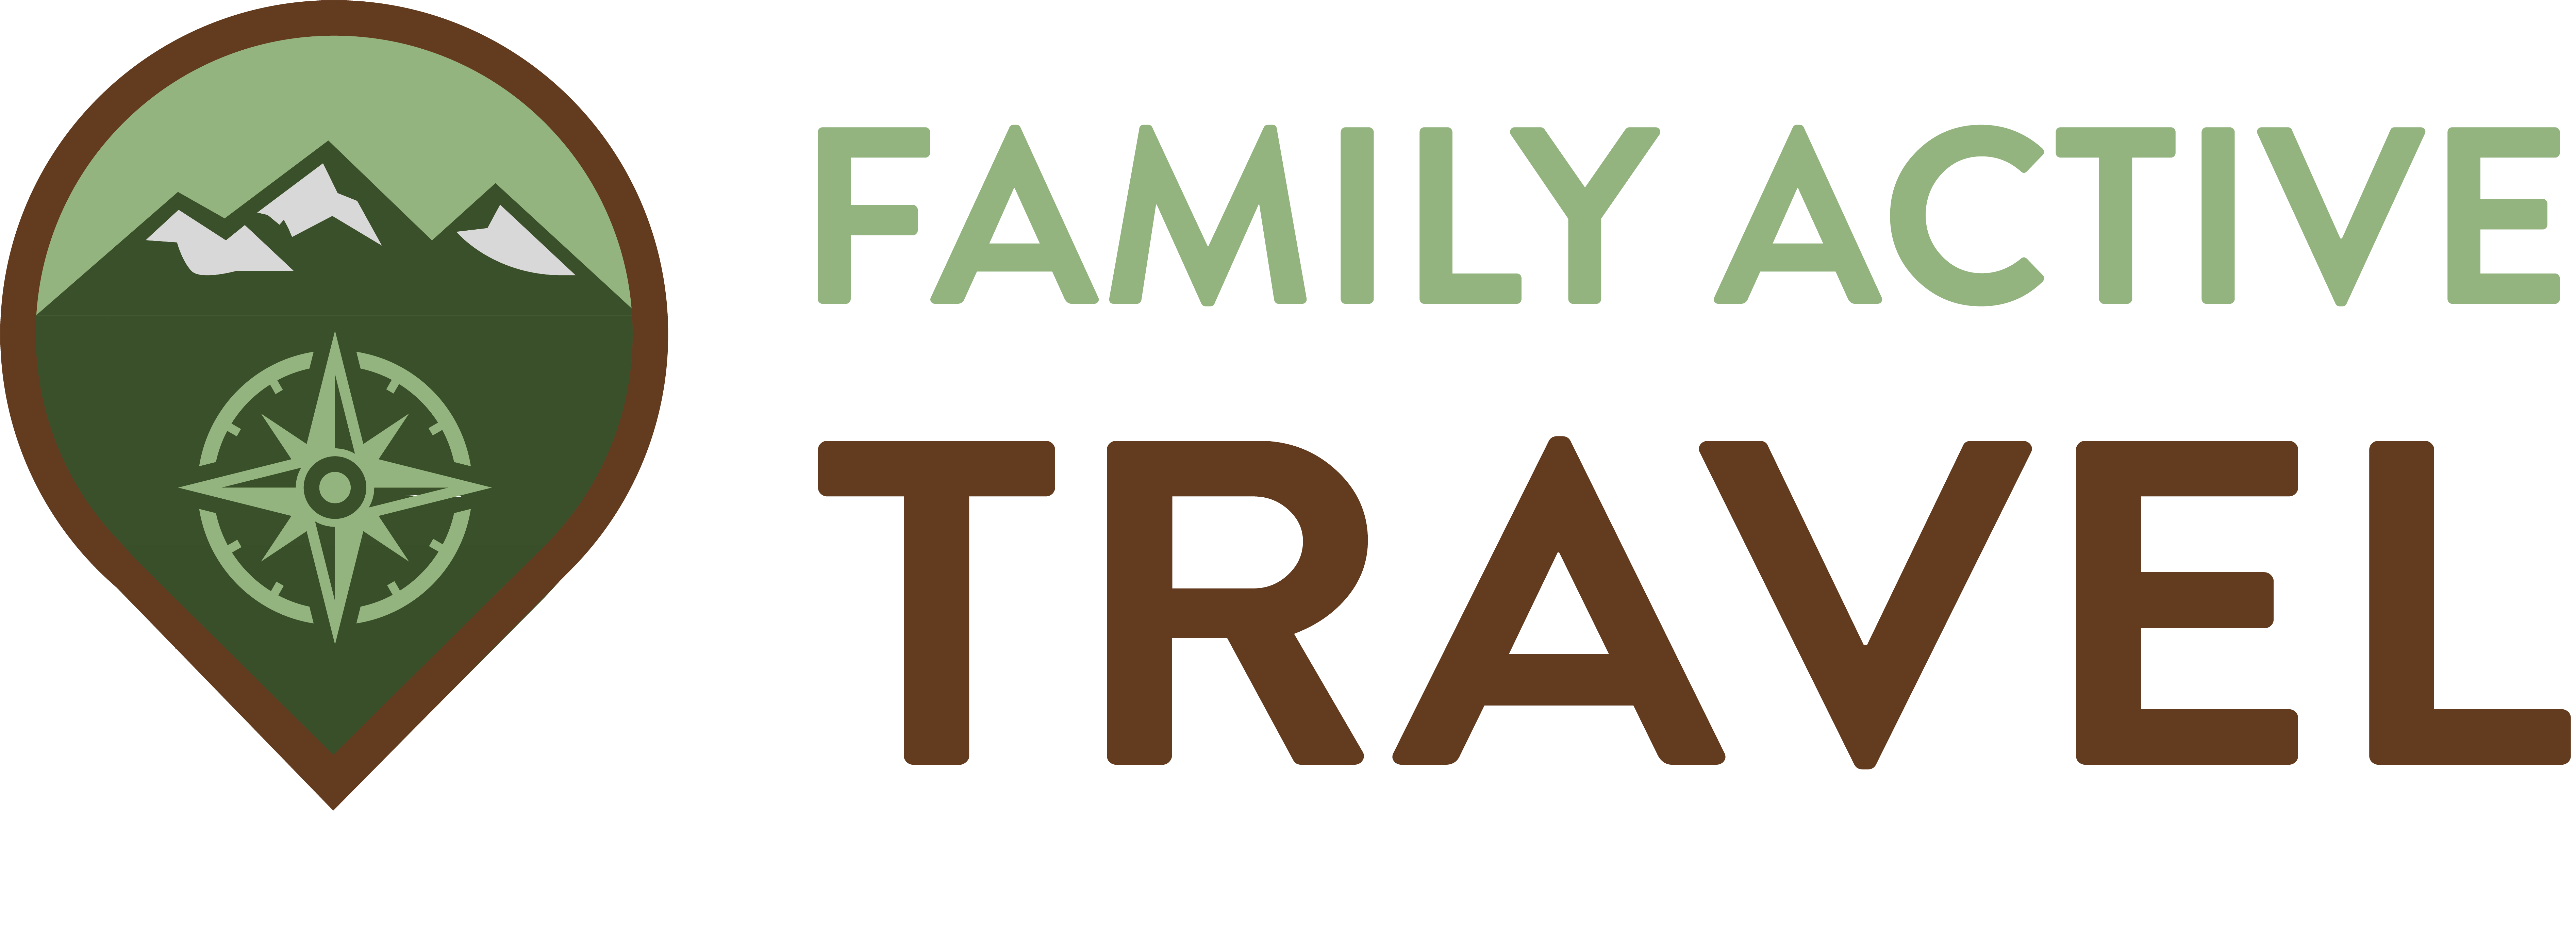 Family Active Travel